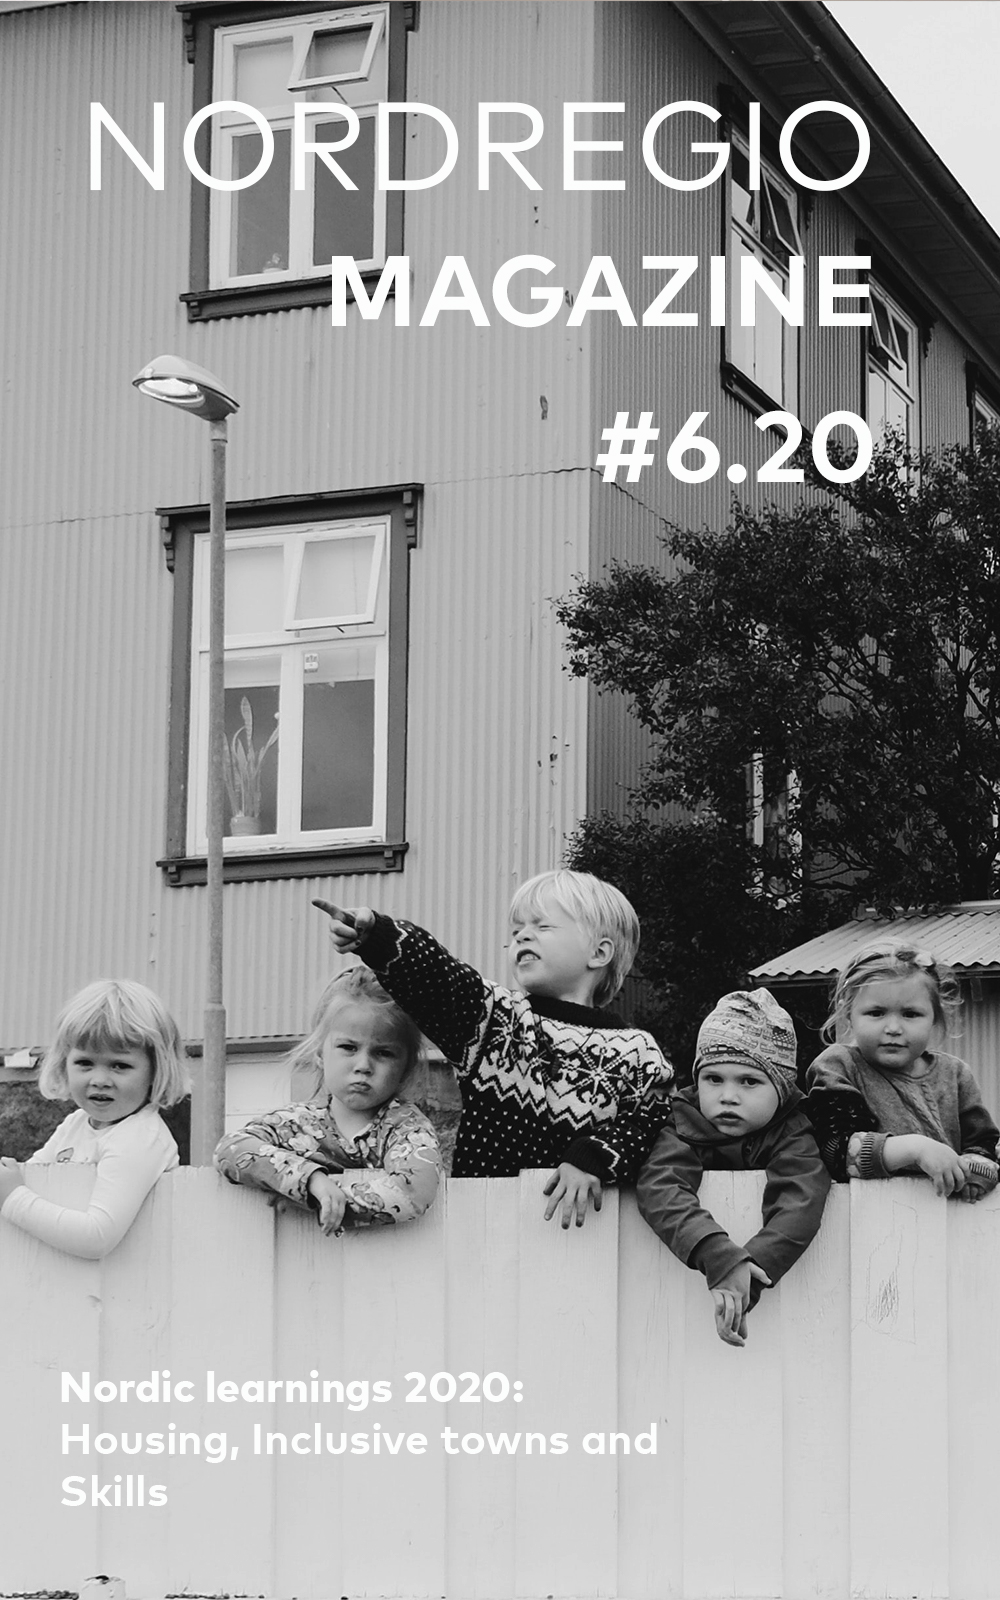 It is the cover of the magazine portraying kids standing by the fence and looking into different directions.